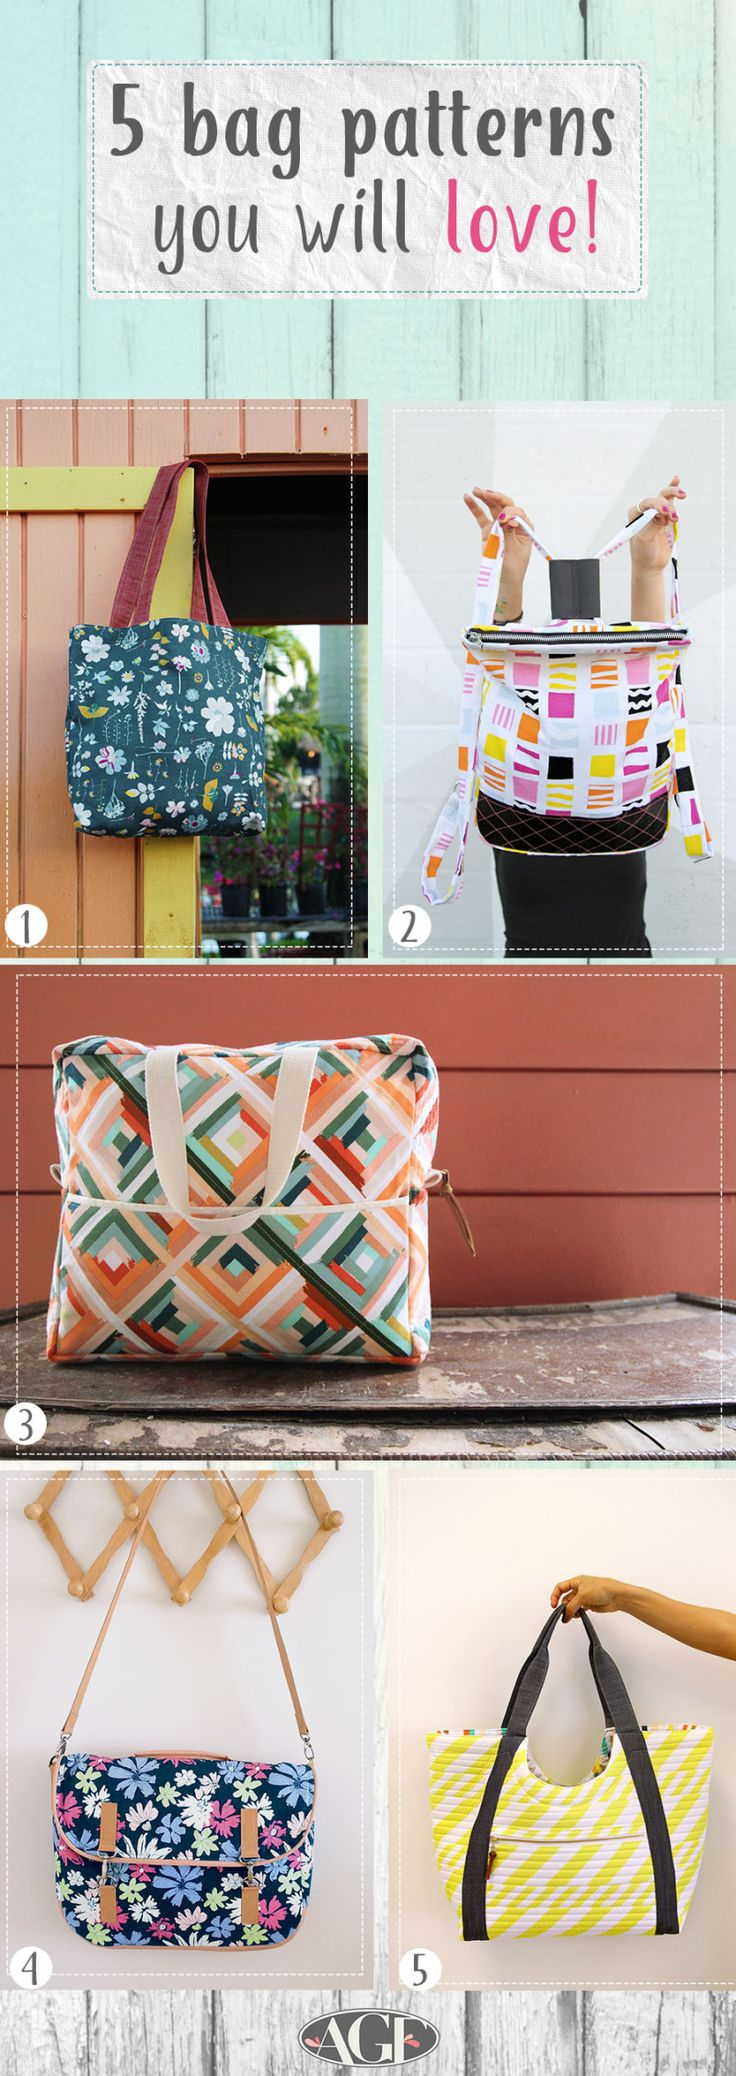 5 bag patterns you will love made with Canvas fabric! http://hotdietpills.com/cat2/celebrity-influencers.html